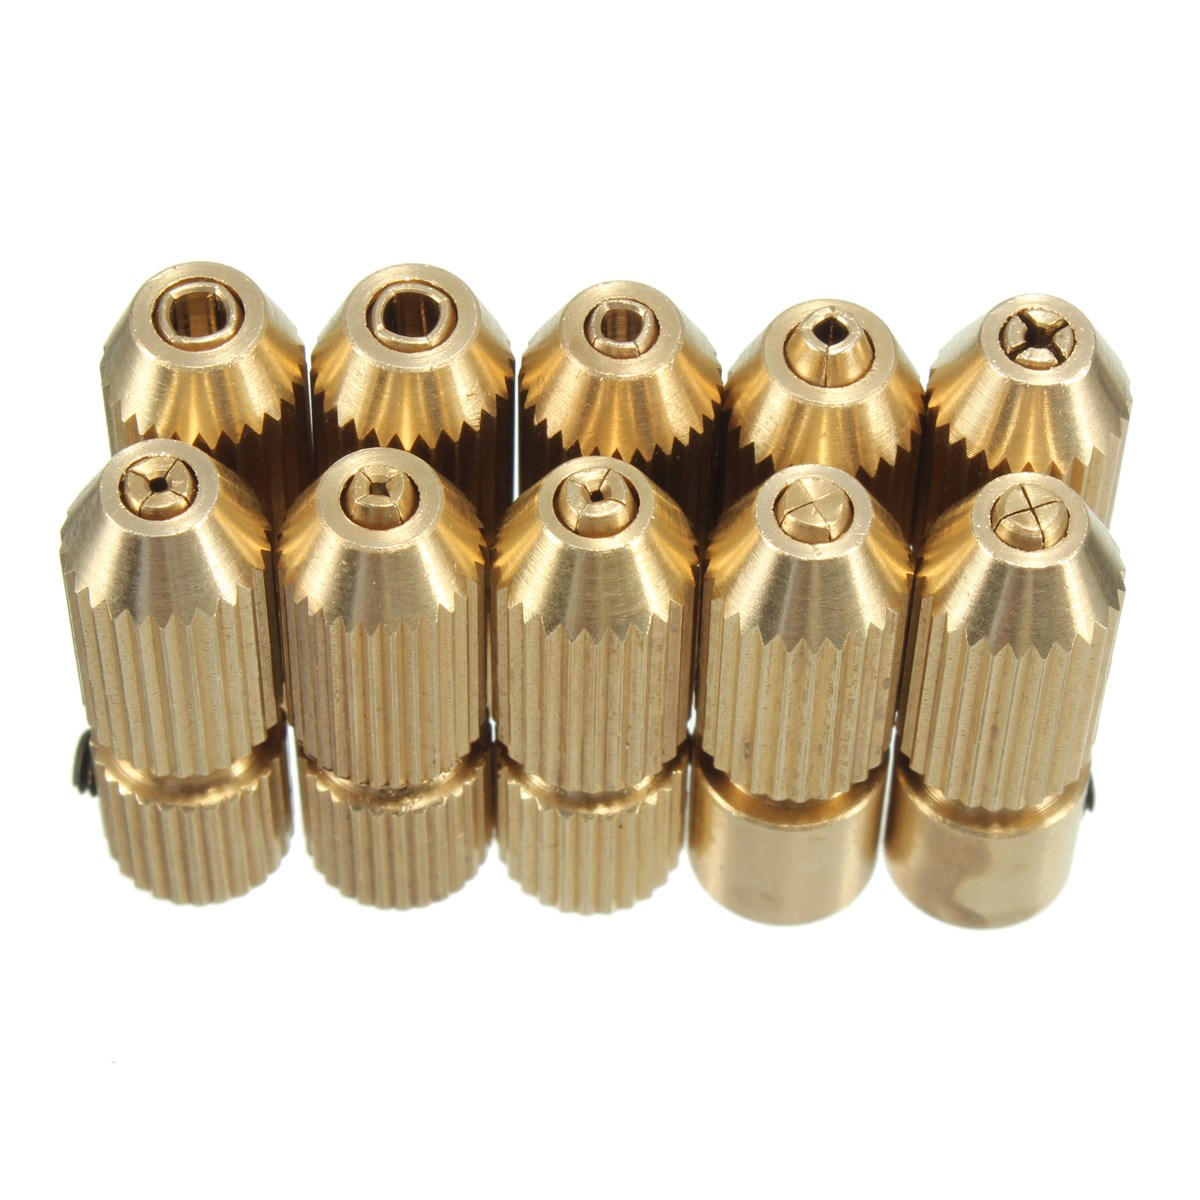 2.3mm Brass Electric Motor Shaft Clamp Fixture Chuck Mini Small For 0.7mm-3.2mm Drill Micro Drill Bit Clamp Fixture Chuck